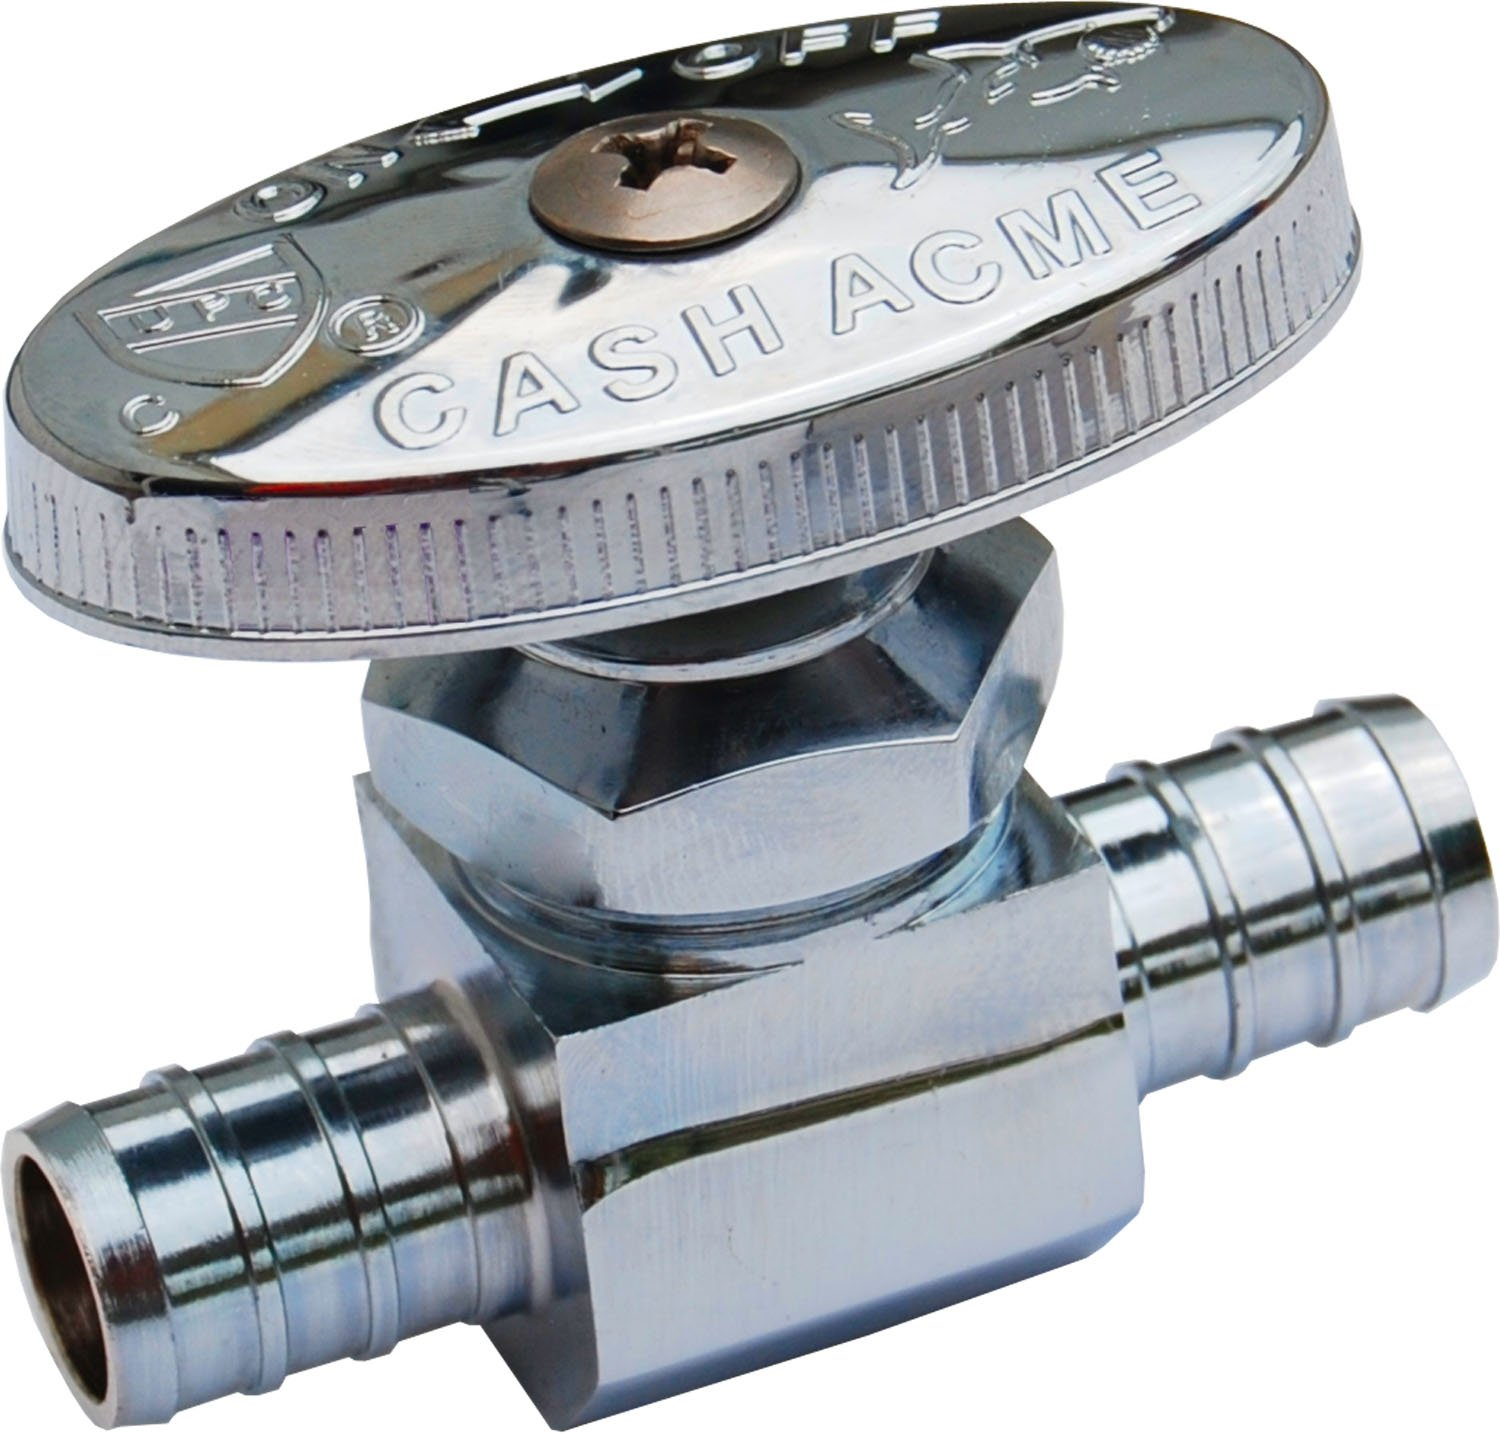 SharkBite 23063LF PEX Straight Shut Off Valve for Faucet or Toilet Installation, 1/2-Inch by 1/2-Inch